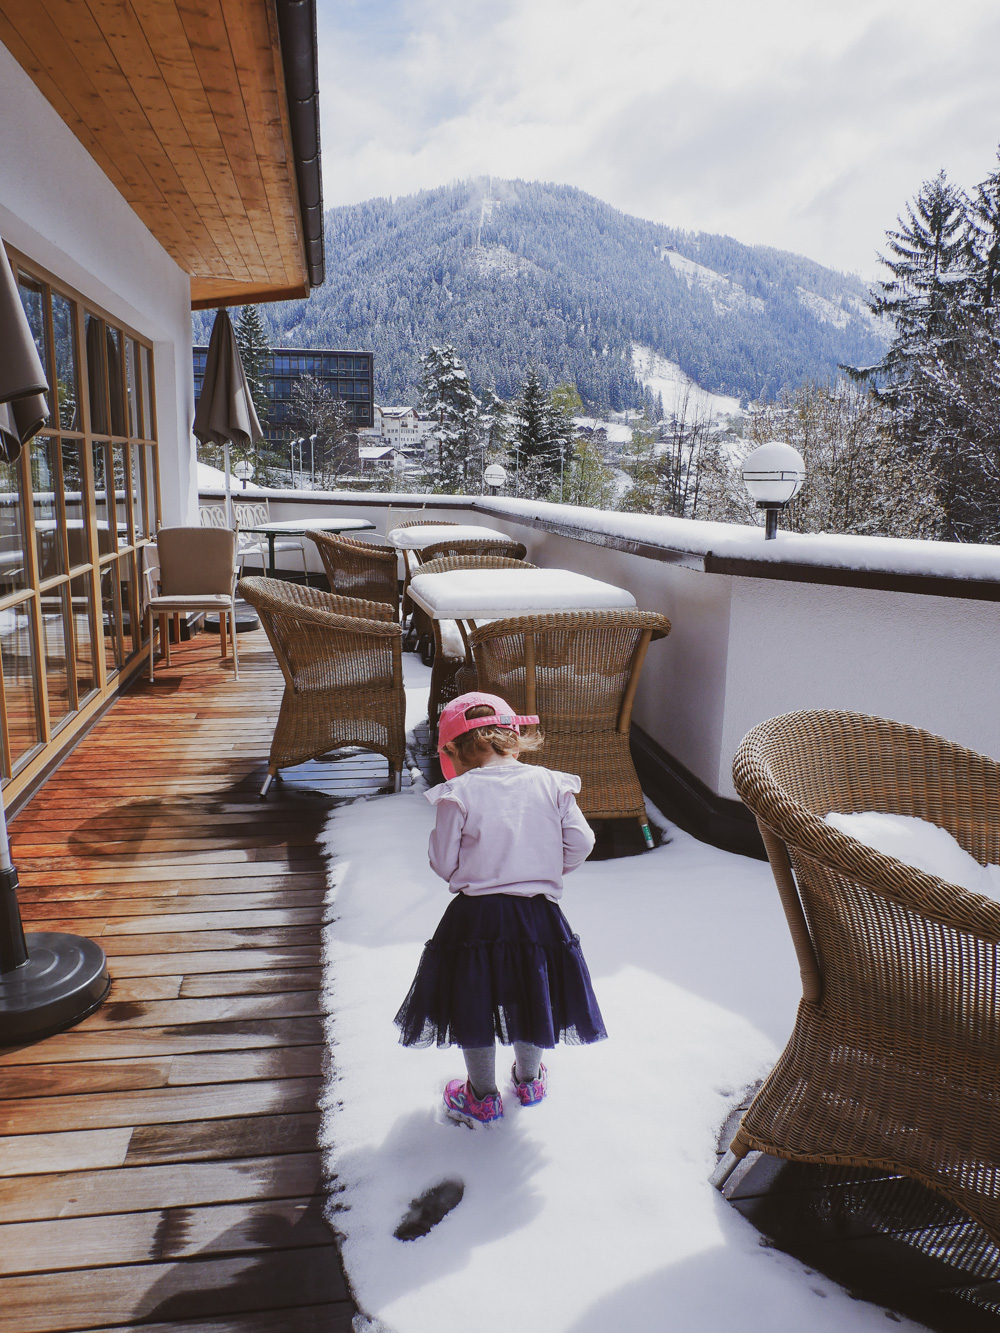 Our delightful spring break at Hotel Engel in South Tyrol